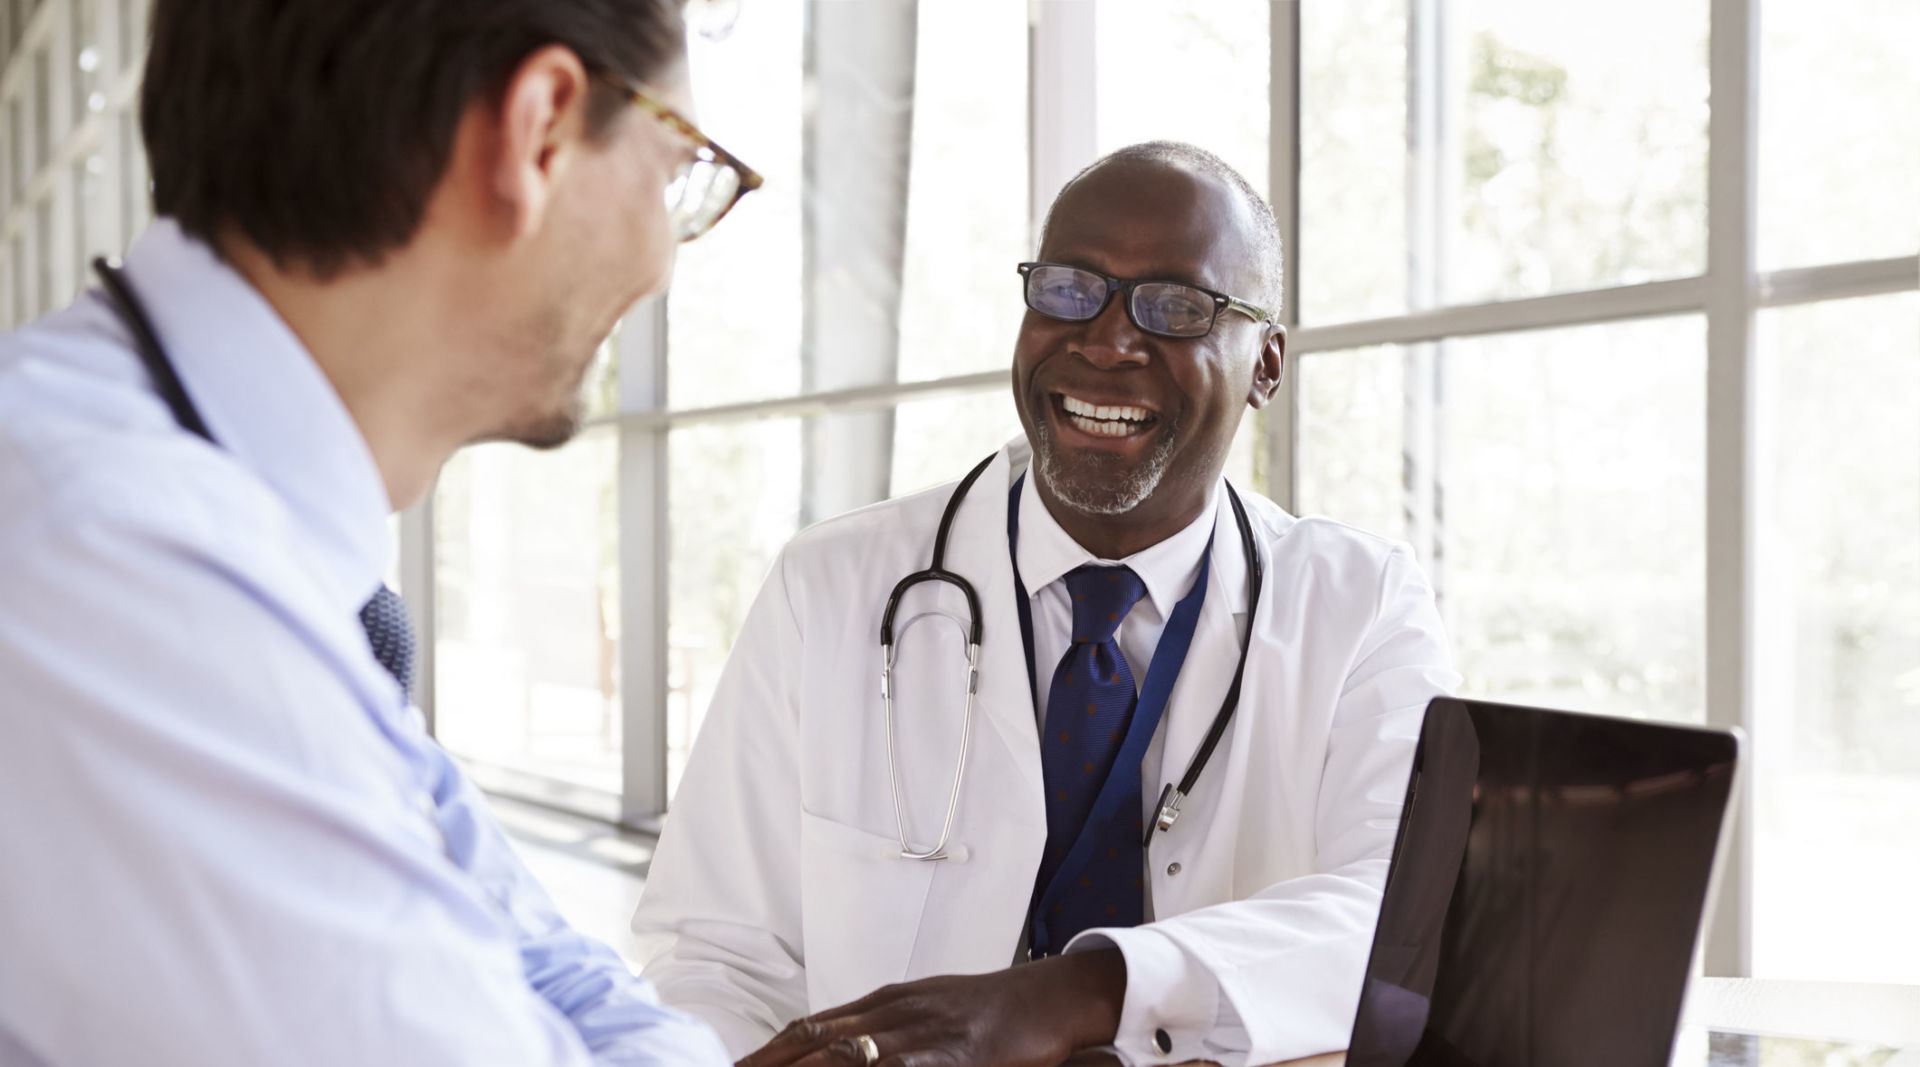 USA Health - The Region's Only Academic Medical Center | USA